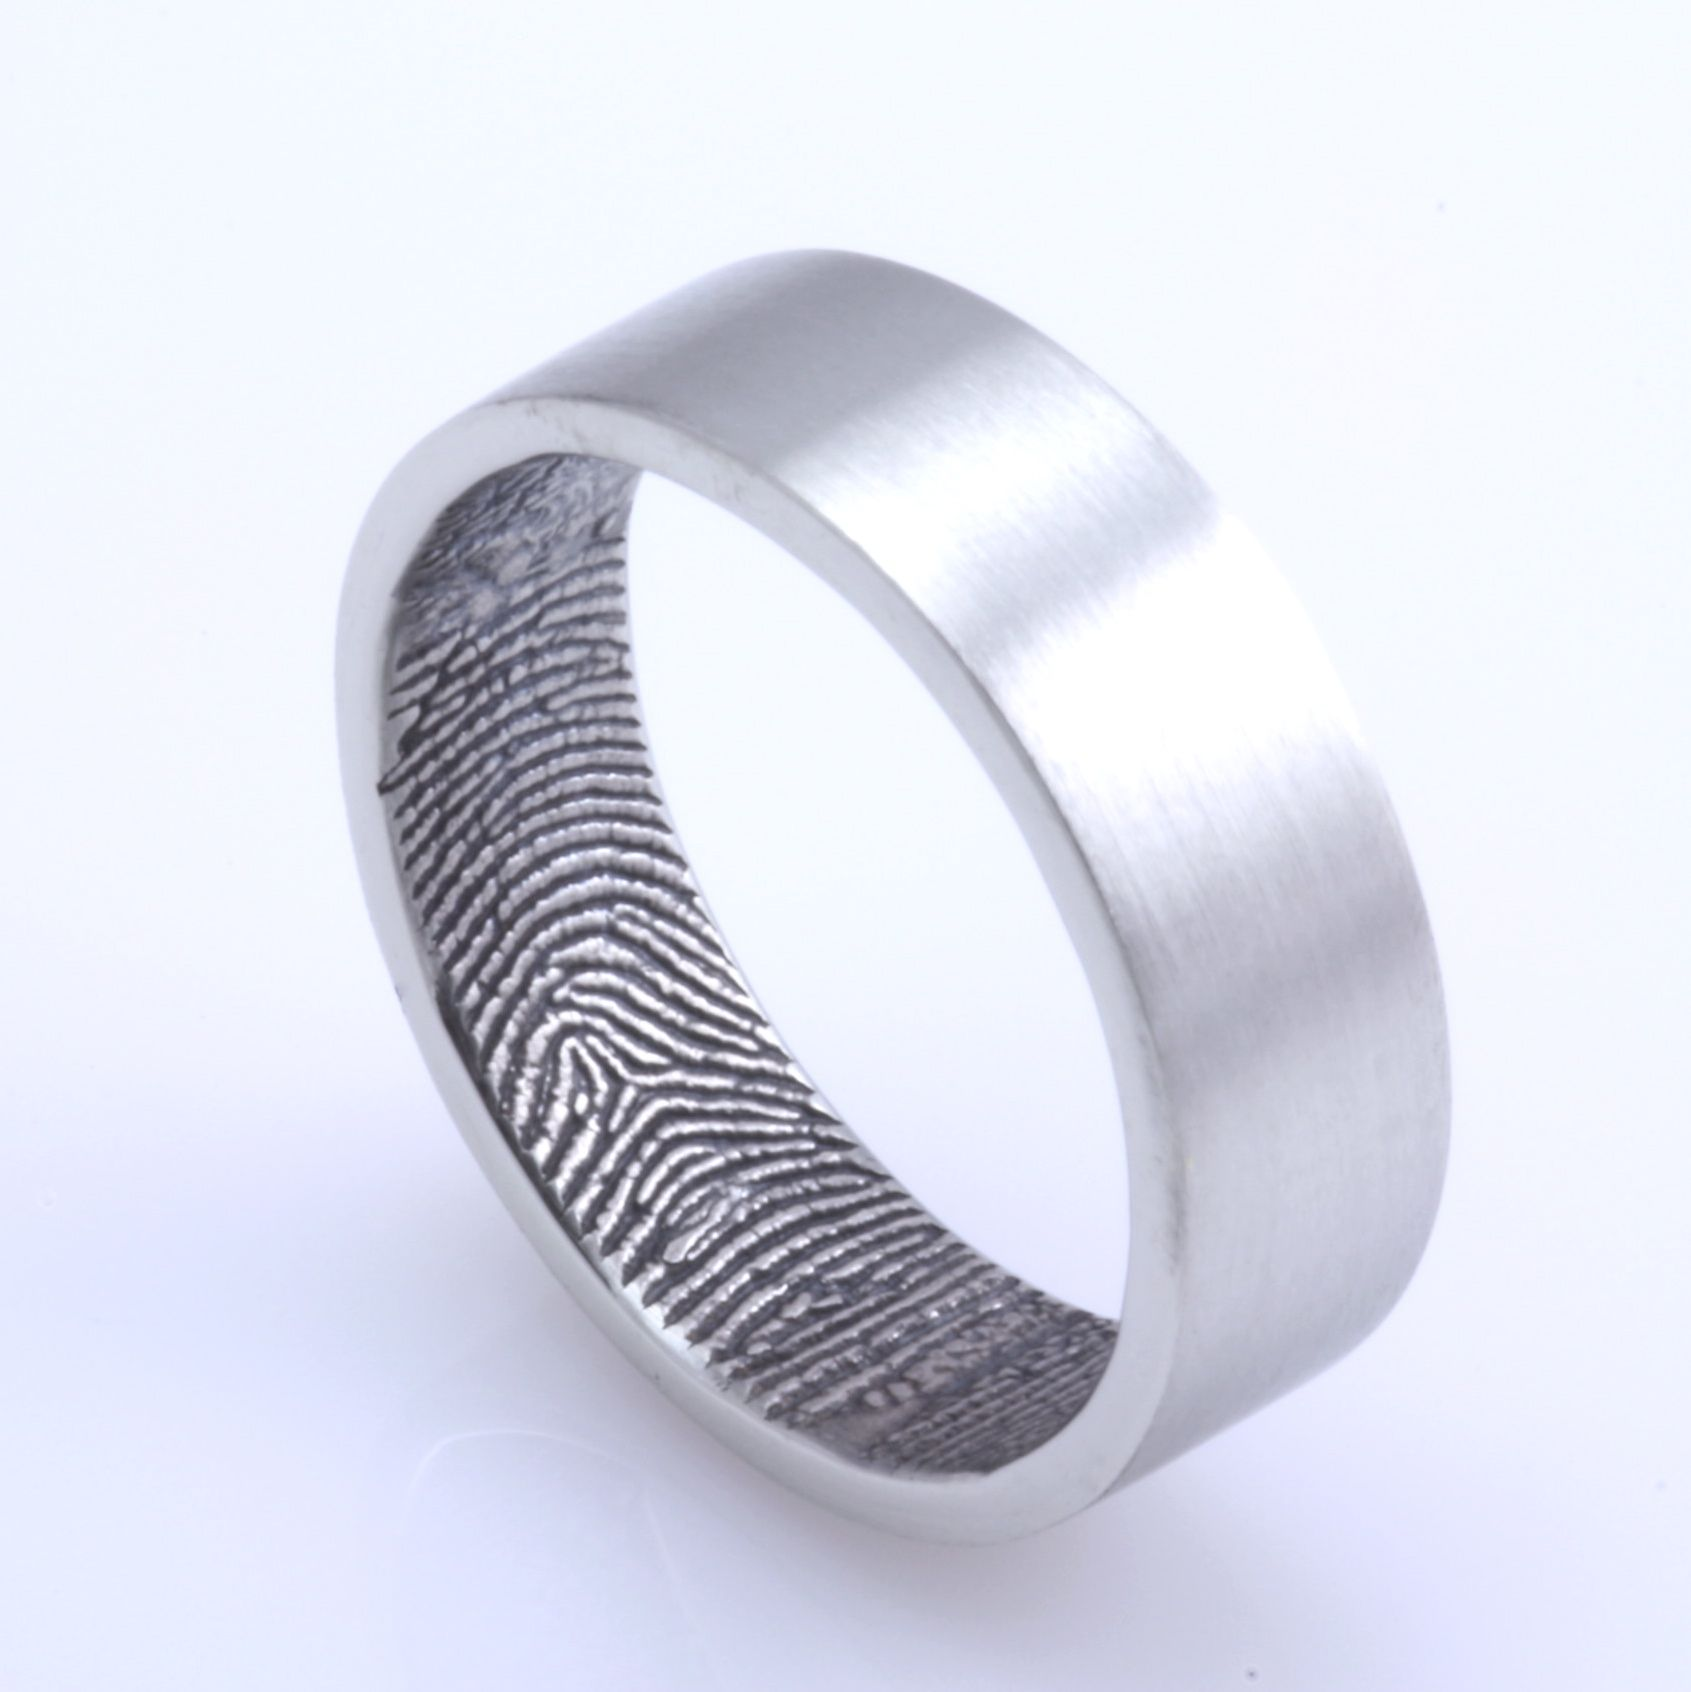 band qalltzm spin traditional photo kehrnal on ring bands wedding rings trend puts personal fingerprint